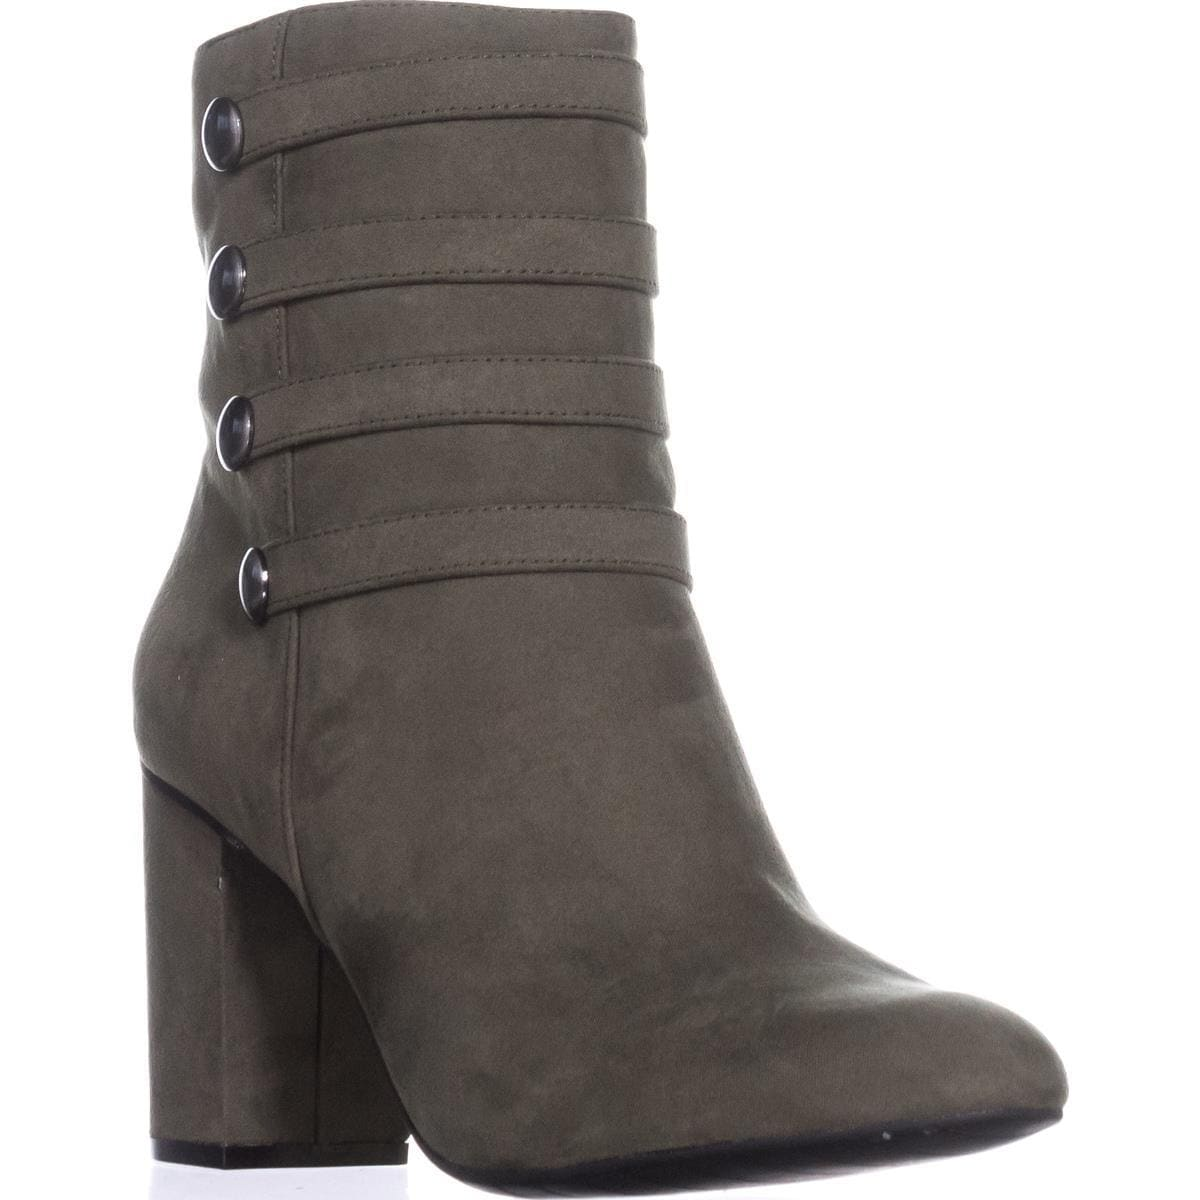 85a2333a294 Buy Medium Kenneth Cole Women s Boots Online at Overstock